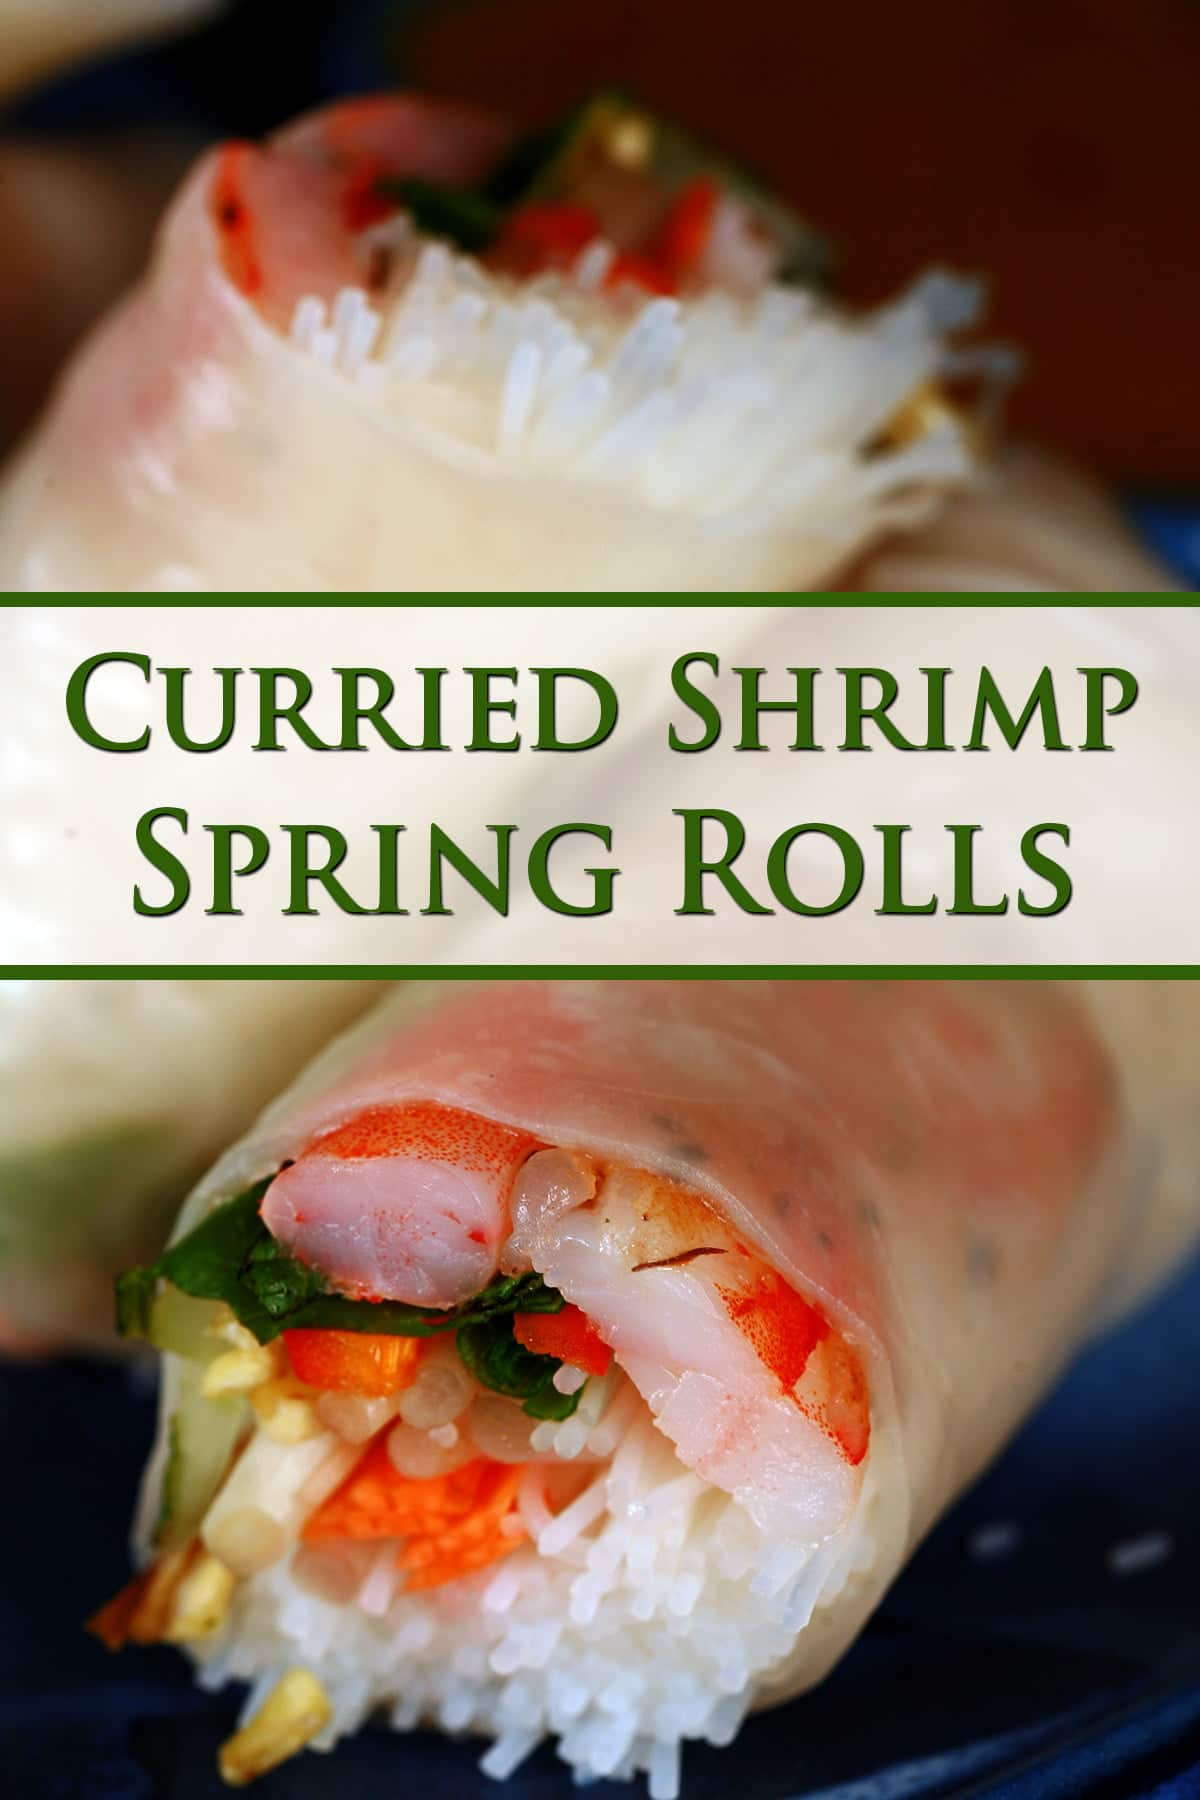 2 and a half curried shrimp spring rolls are arranged on a blue plate, with a small bowl of spicy peanut dip next to it.